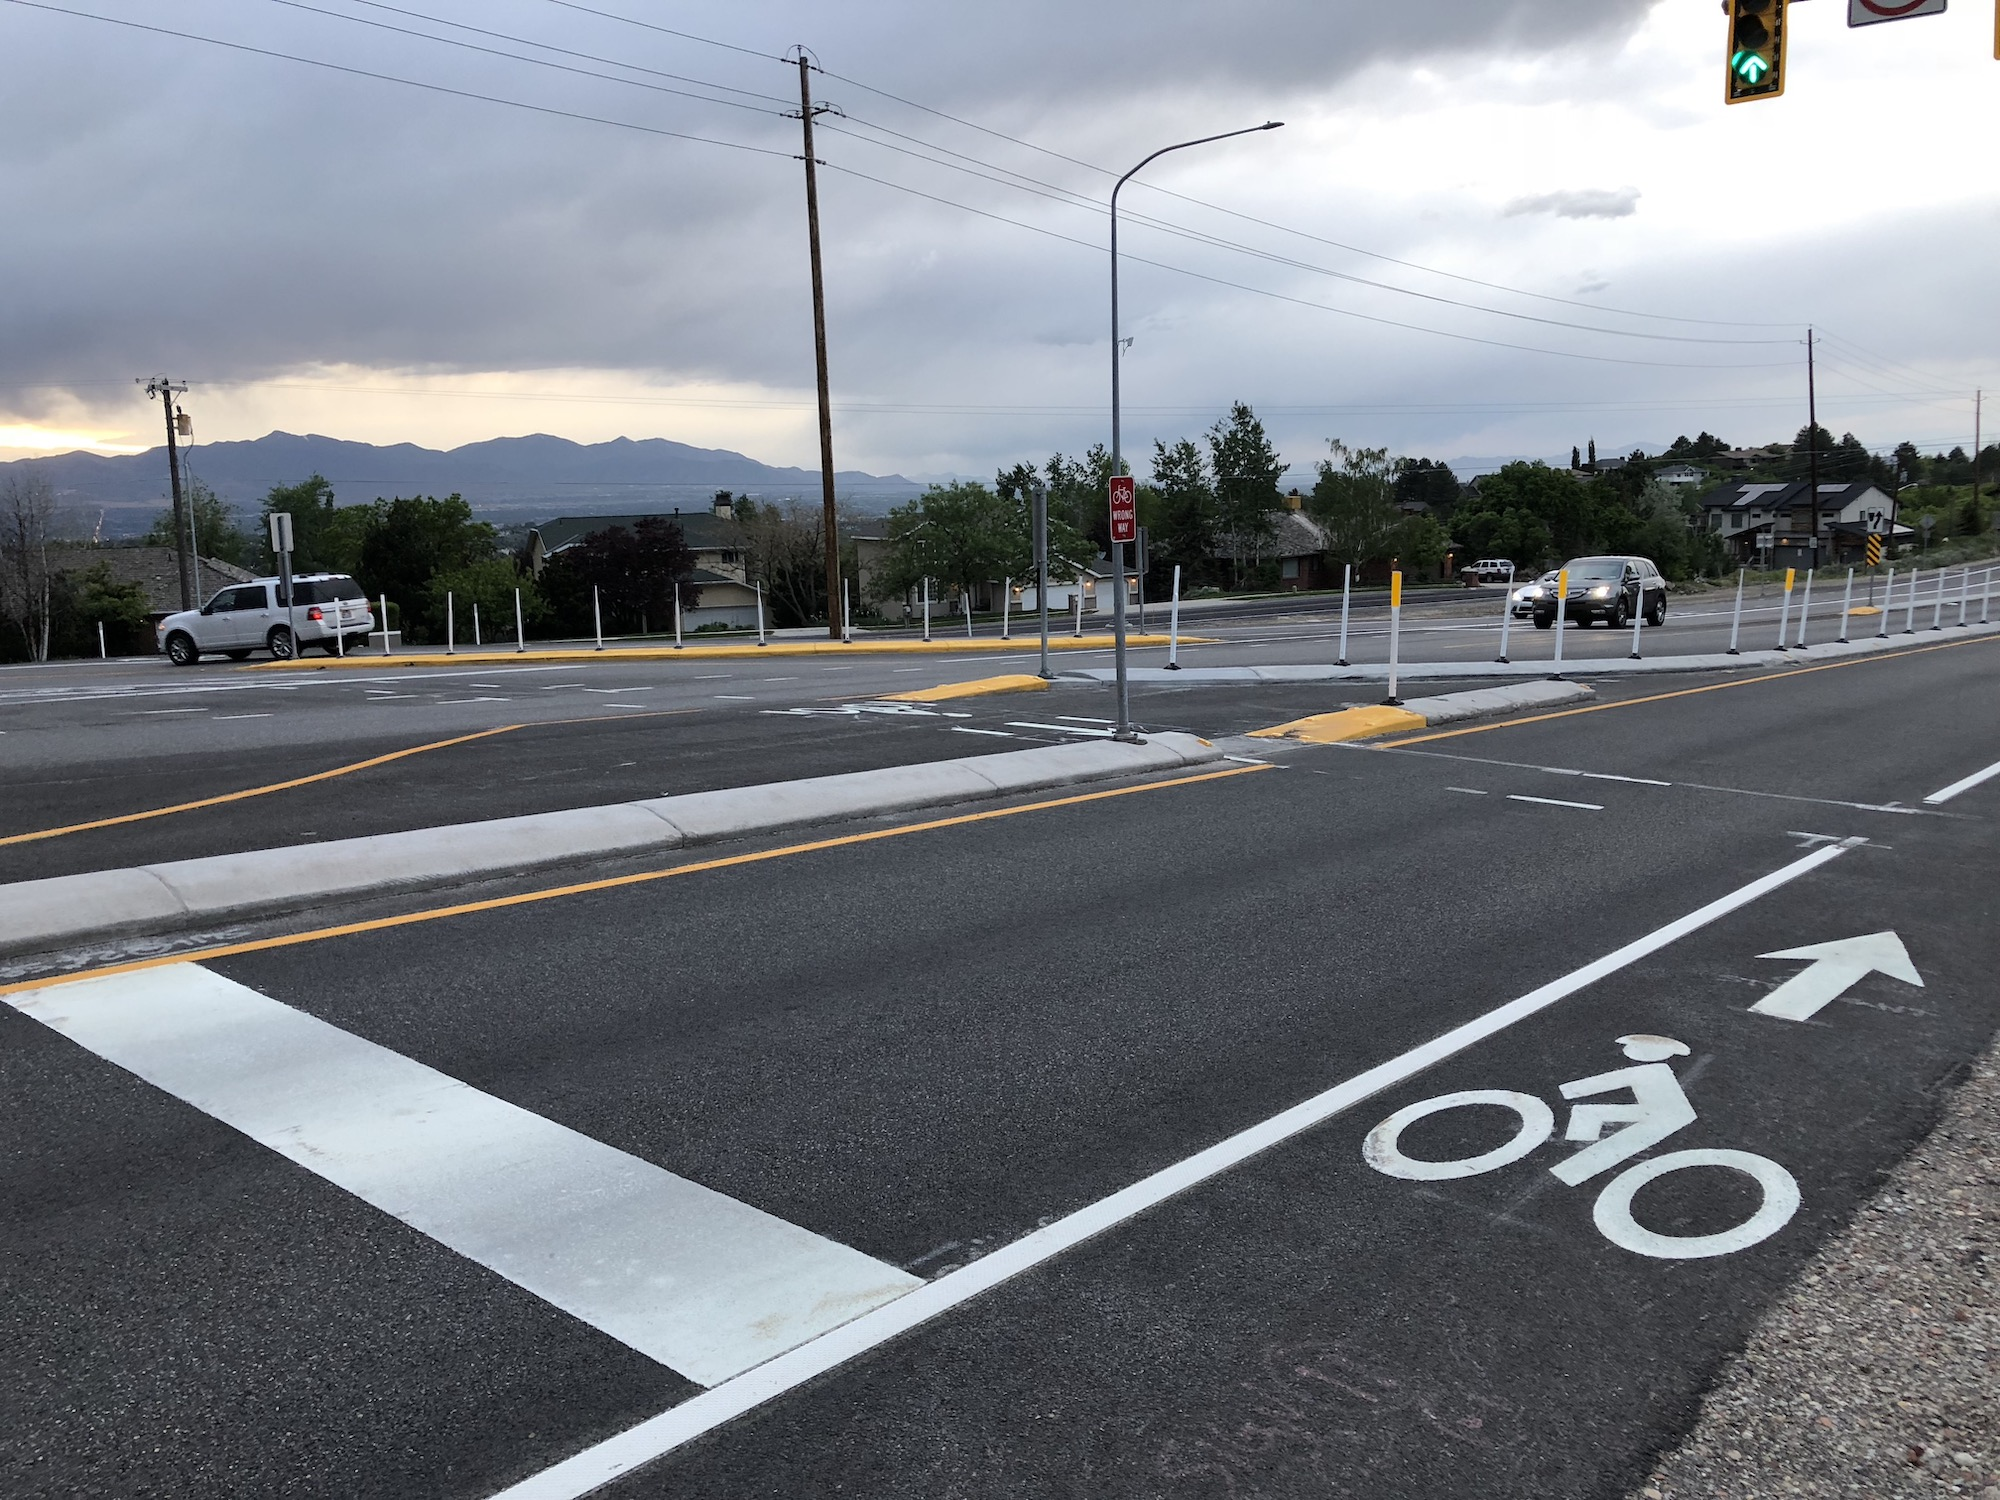 UDOT is proposing to make Wasatch Blvd 5 lanes with a high design speed. Photo by Dave Iltis